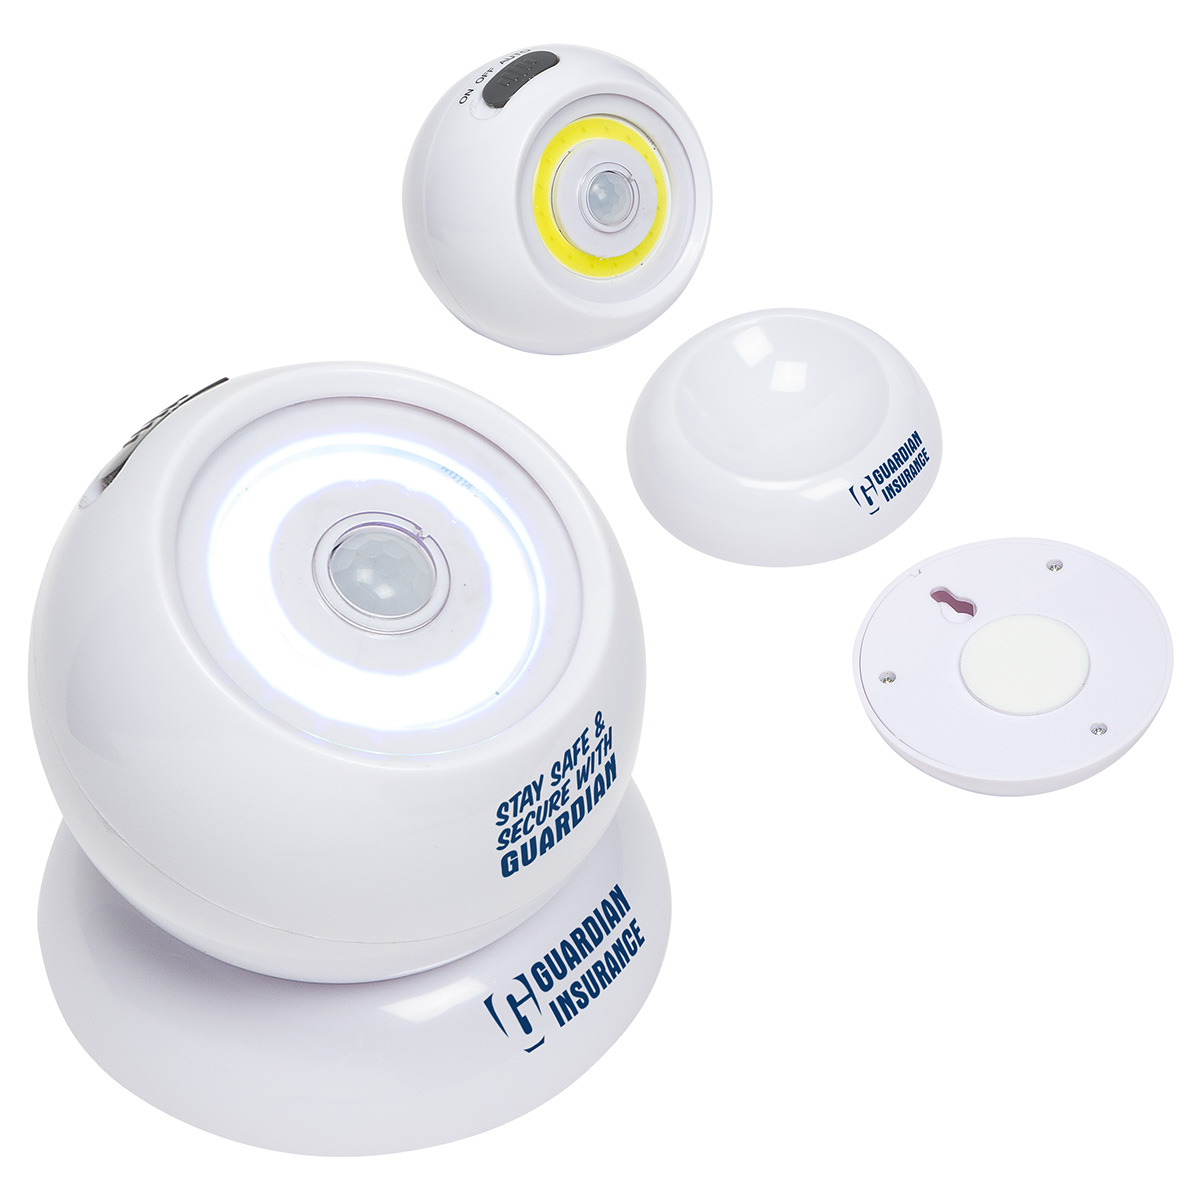 Orbit Swivel Beacon with Motion Detector, WLT-OS18, 1 Colour Imprint